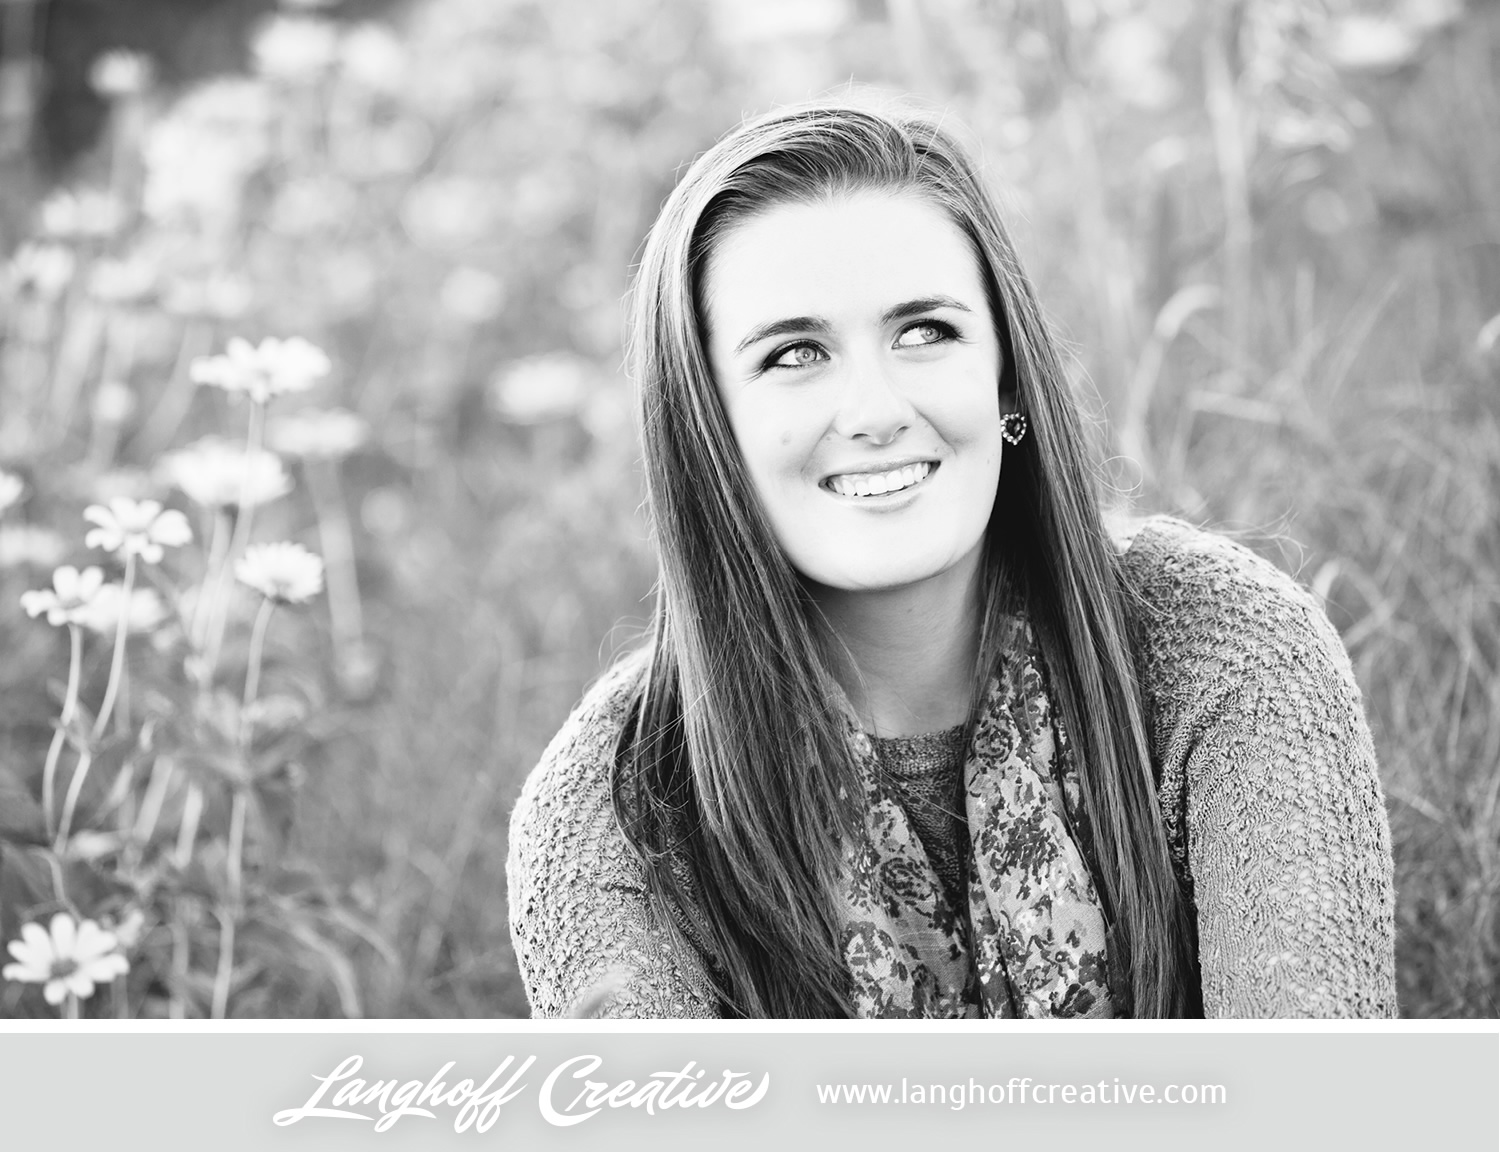 LanghoffCreative-2013RacineSeniorPortrait-Aja06-photo.jpg